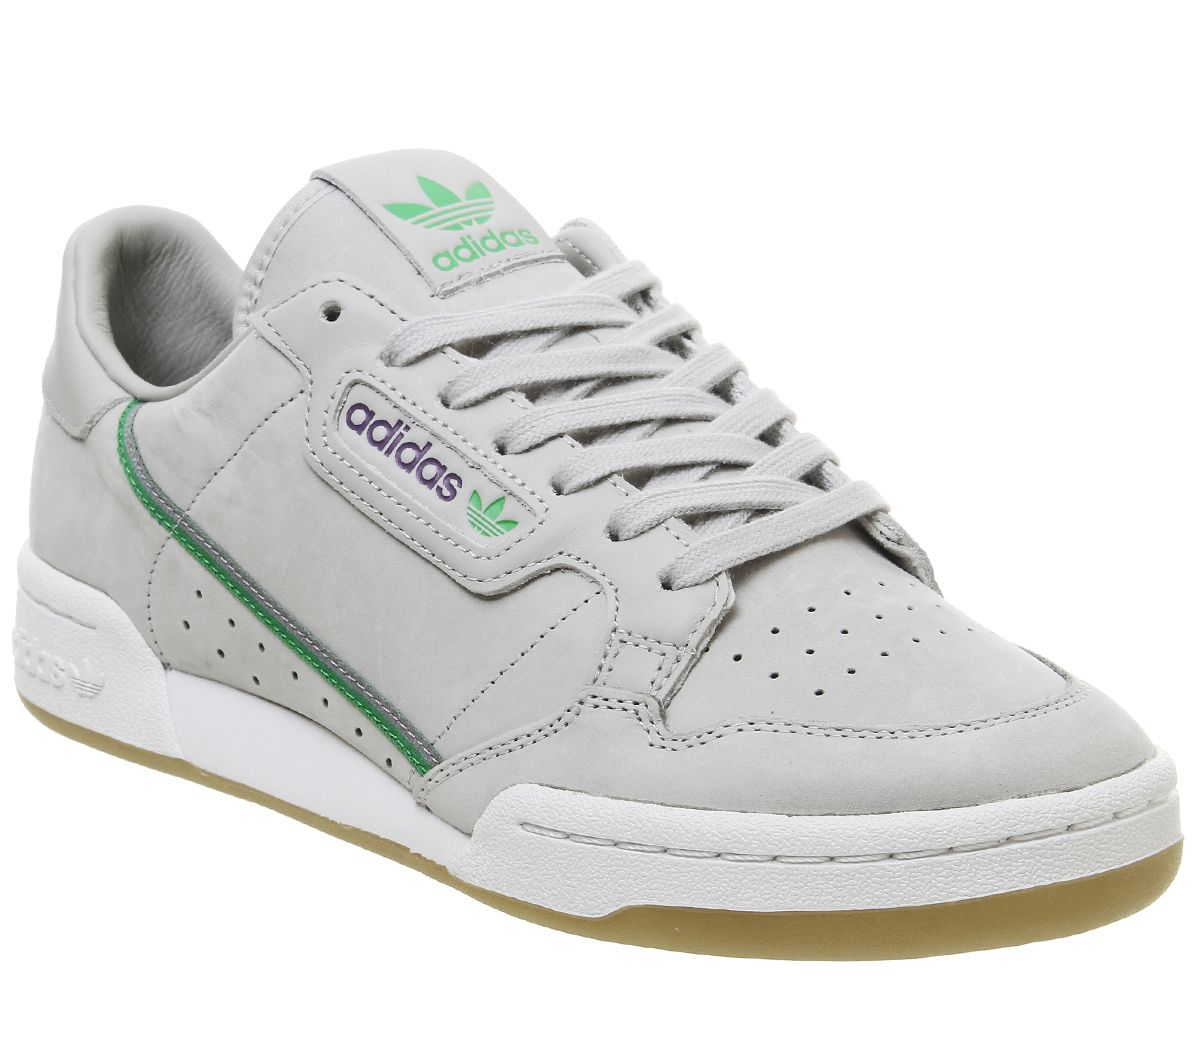 fbabcc94 adidas Continental 80s Trainers Grey Green Purple Gum Tfl - His trainers